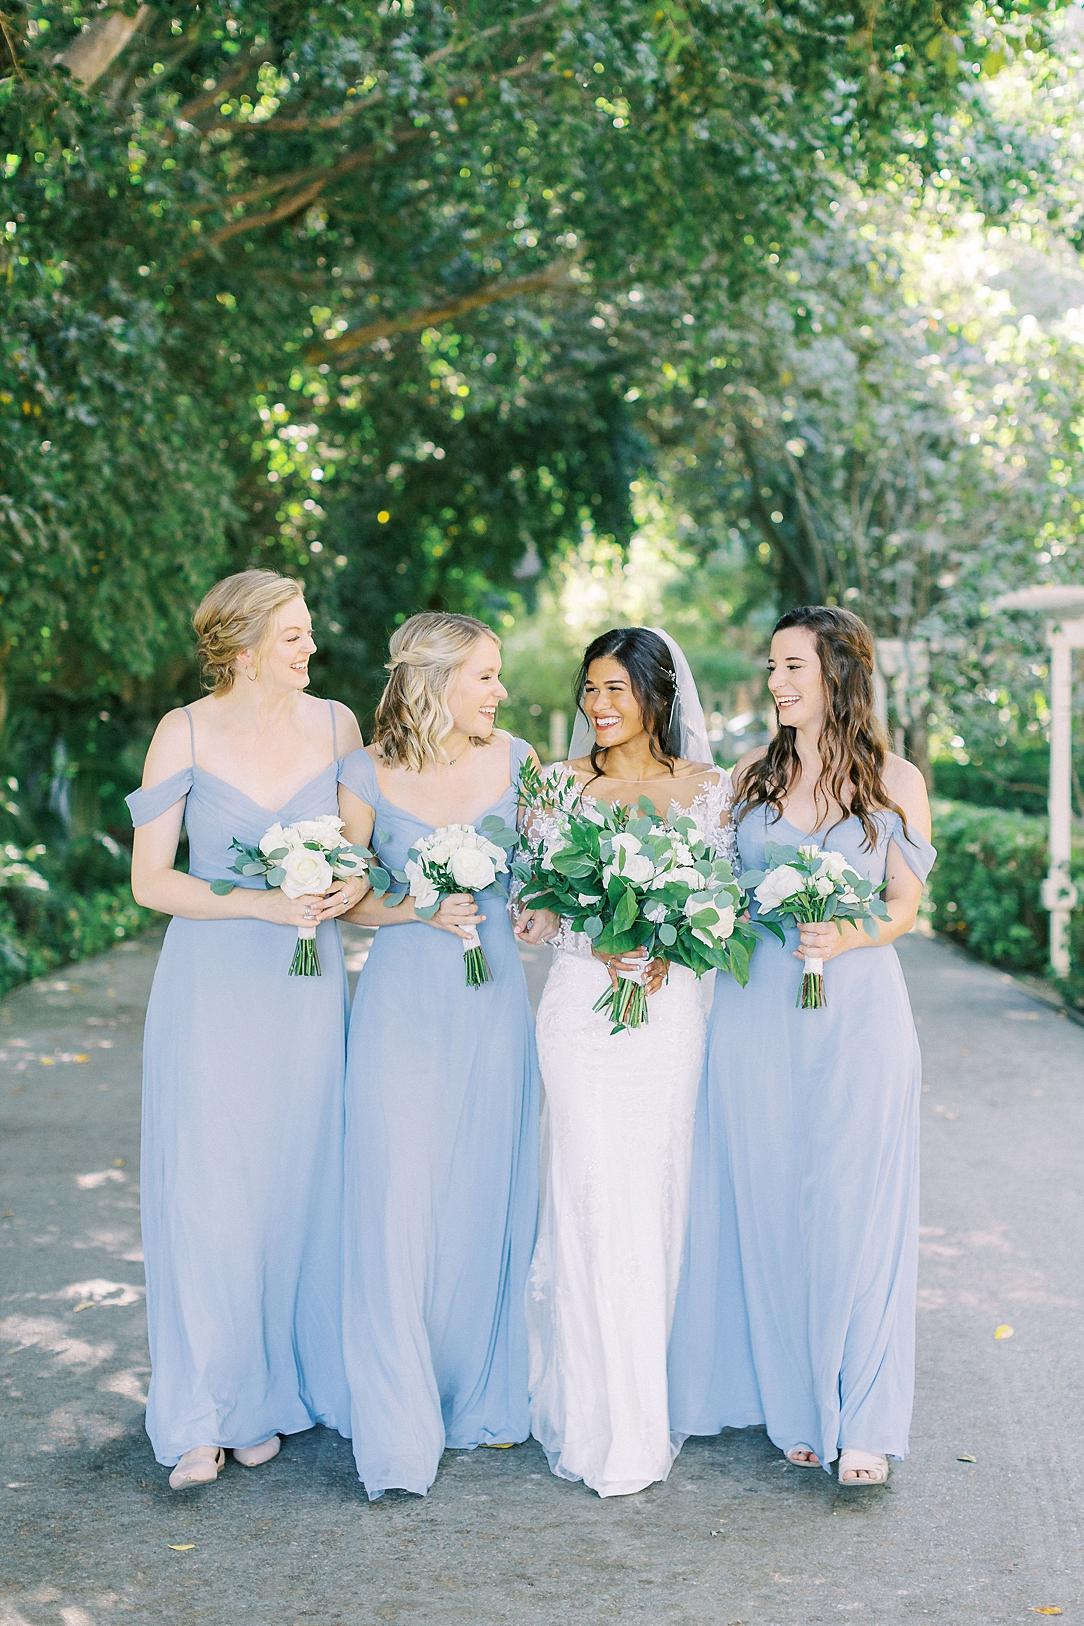 An Organic Floral Inspired Summer Wedding in the gardens of Hartley Botanica Somis by Wedding Photographer Madison Ellis (80)